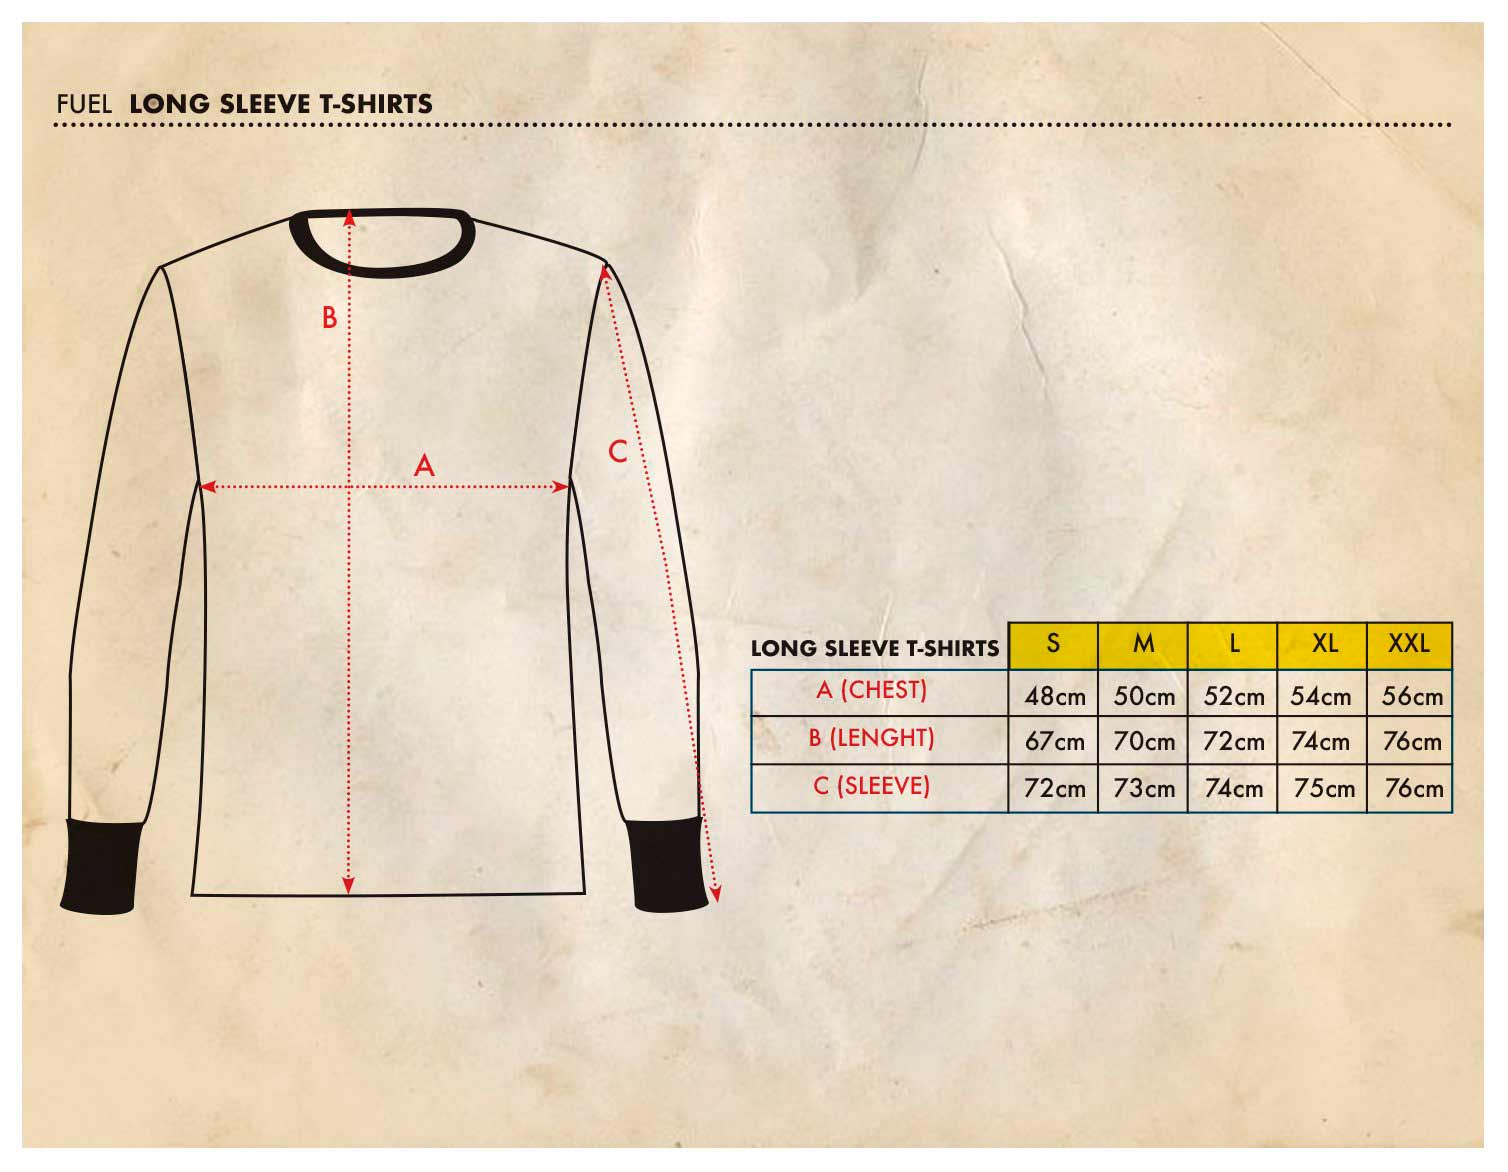 Fuel Long Sleeve - Size Chart